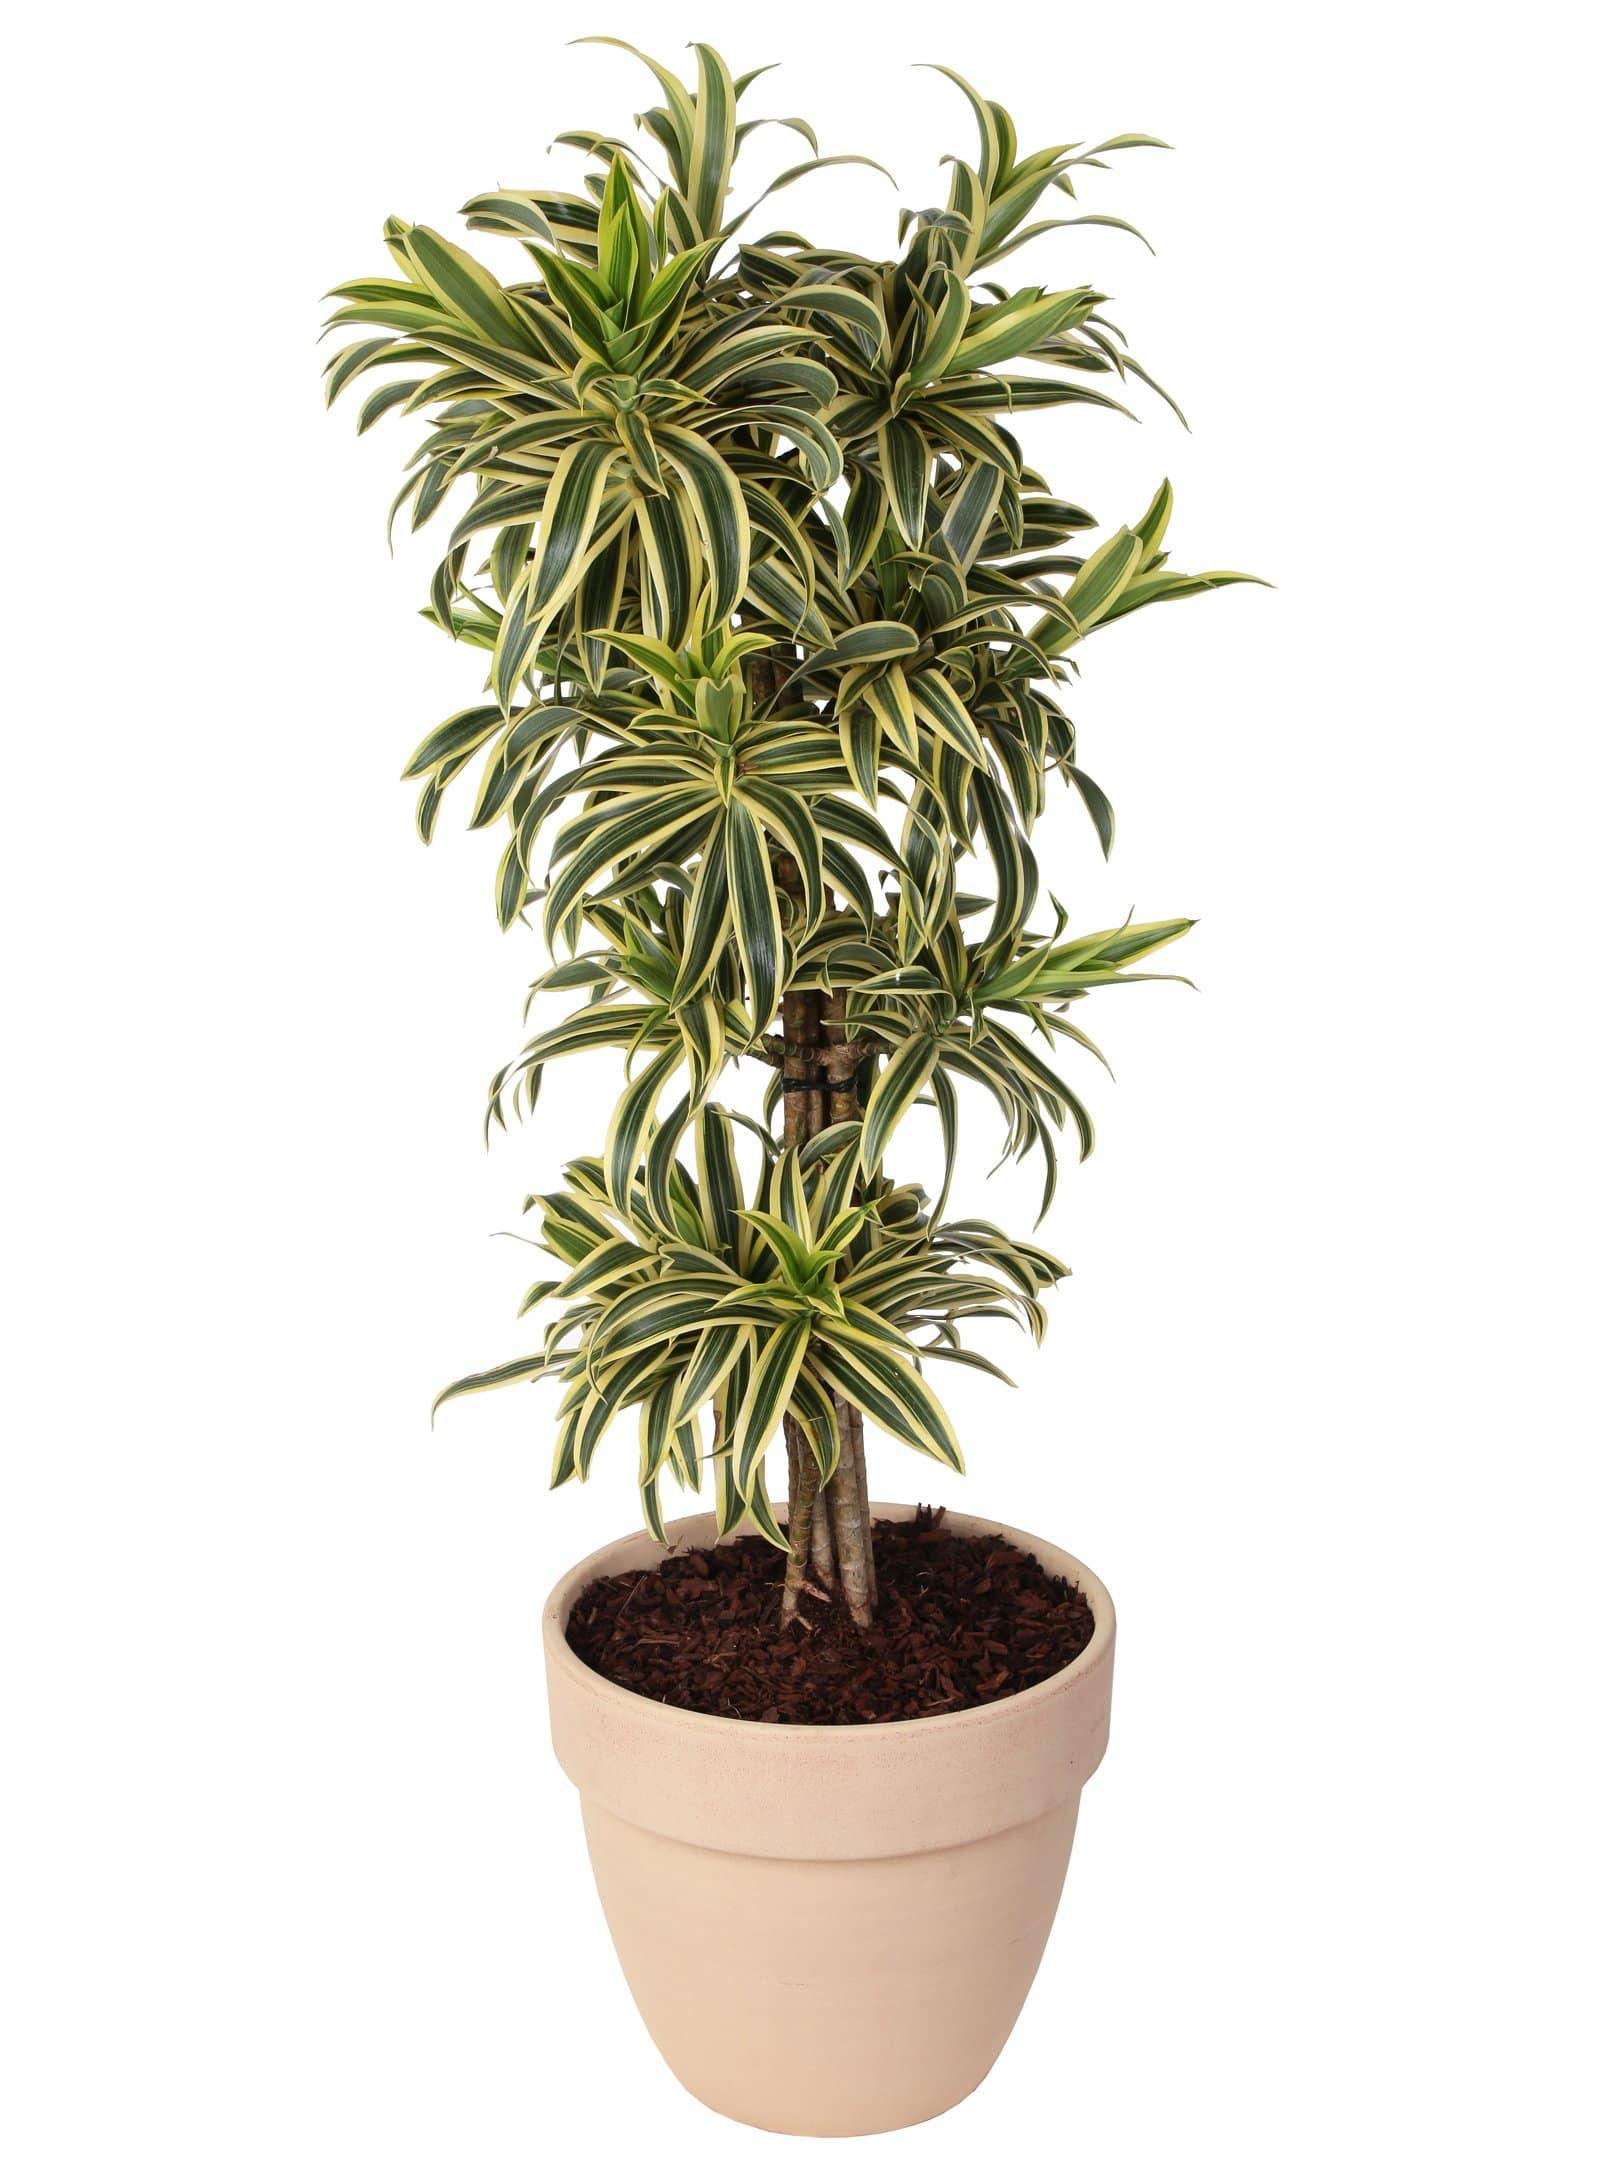 Dracaena Reflexa Pleomele Song Of India in terracotta pot height 120 cm. - Beautiful Little House